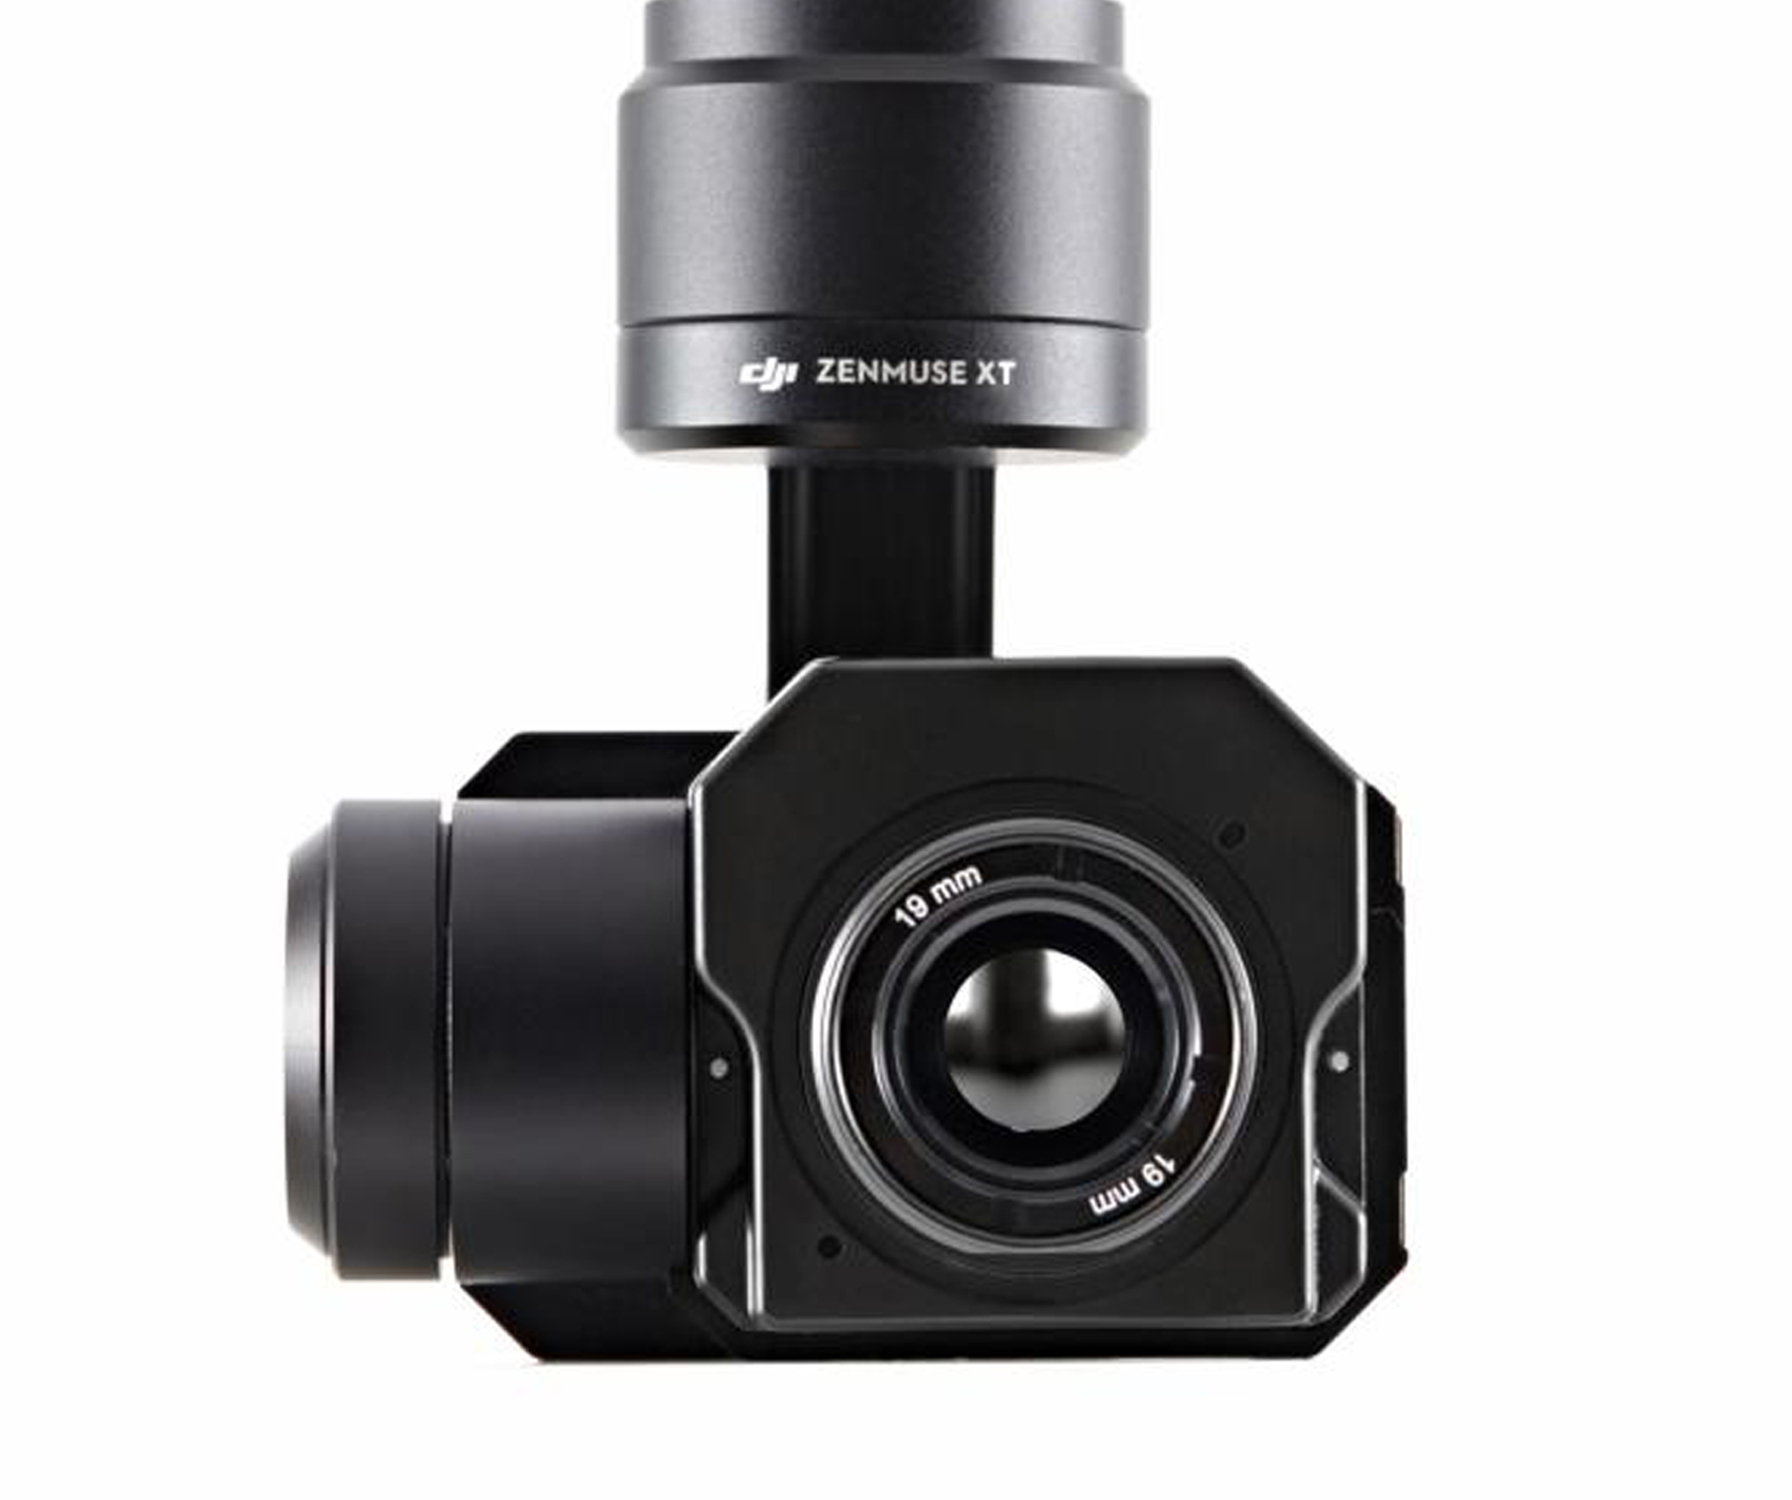 dji zenmuse xt 640x512 30hz fast lens flir tau 2 thermal. Black Bedroom Furniture Sets. Home Design Ideas